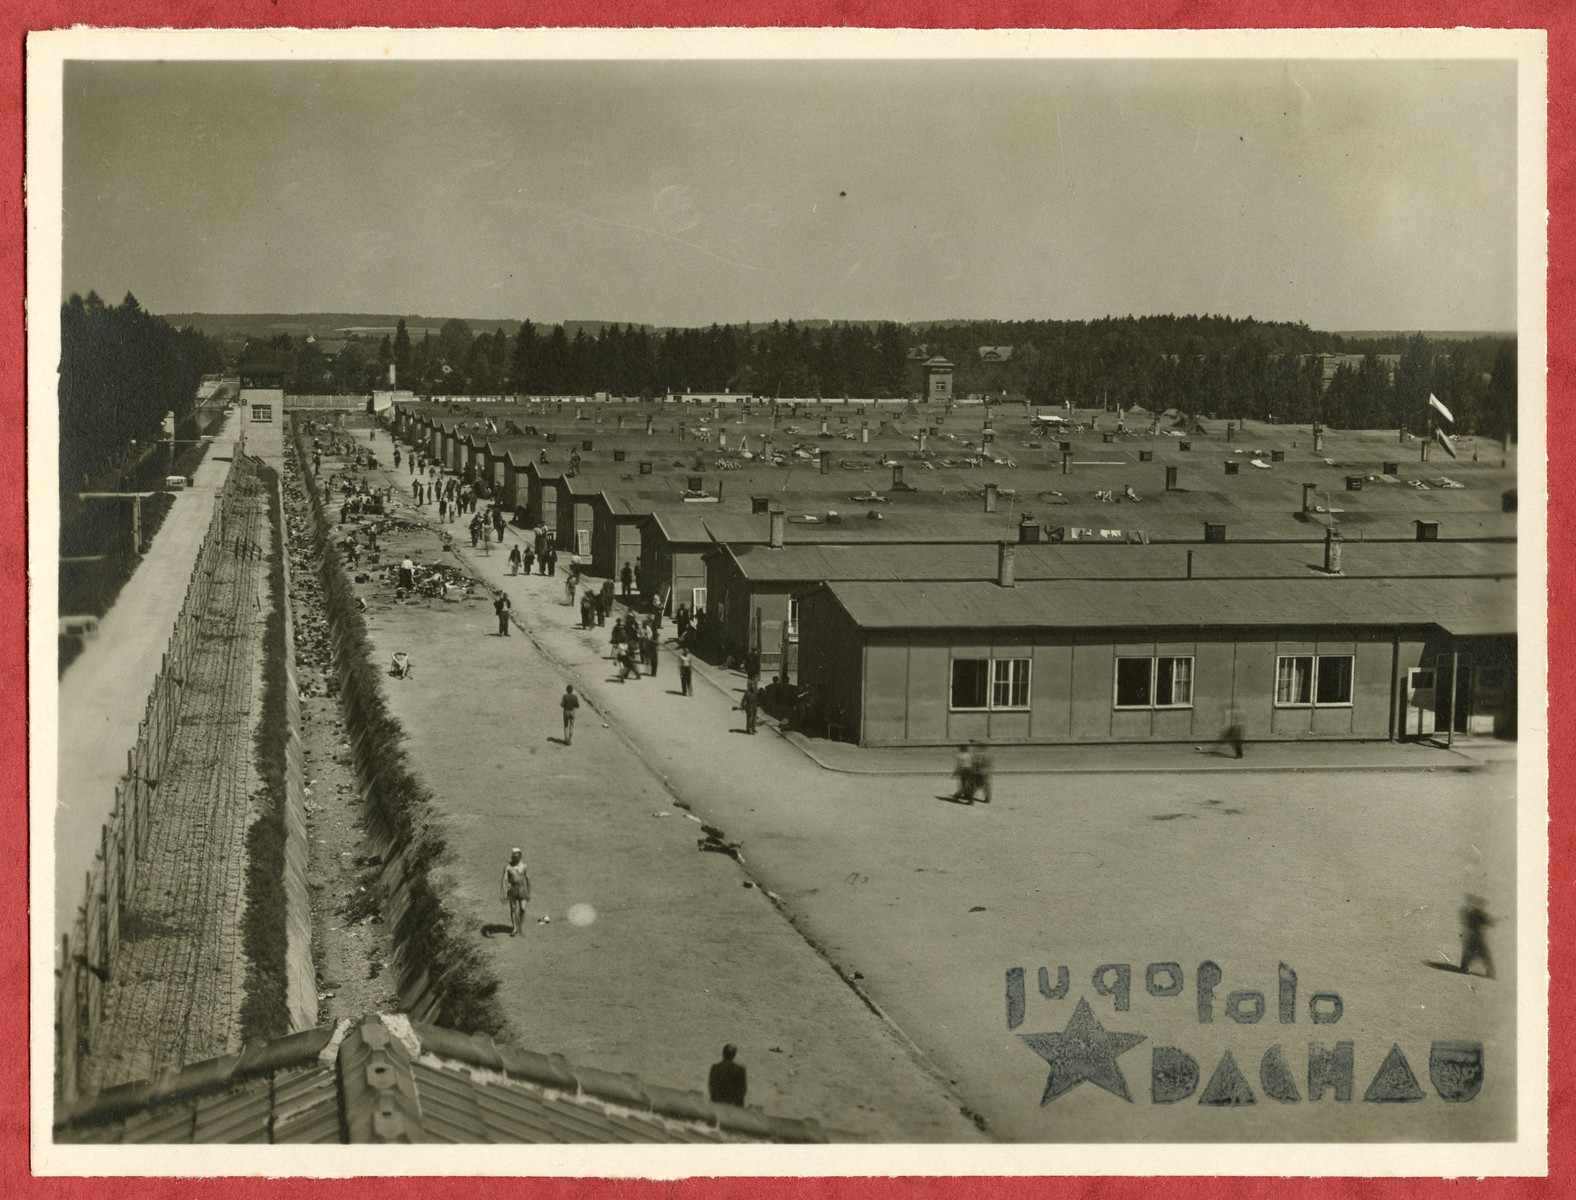 Photograph showing a view of the Dachau concentration camp pasted into an album presented to Lt. Col. Martin Joyce by the Yugoslav prisoner committee.